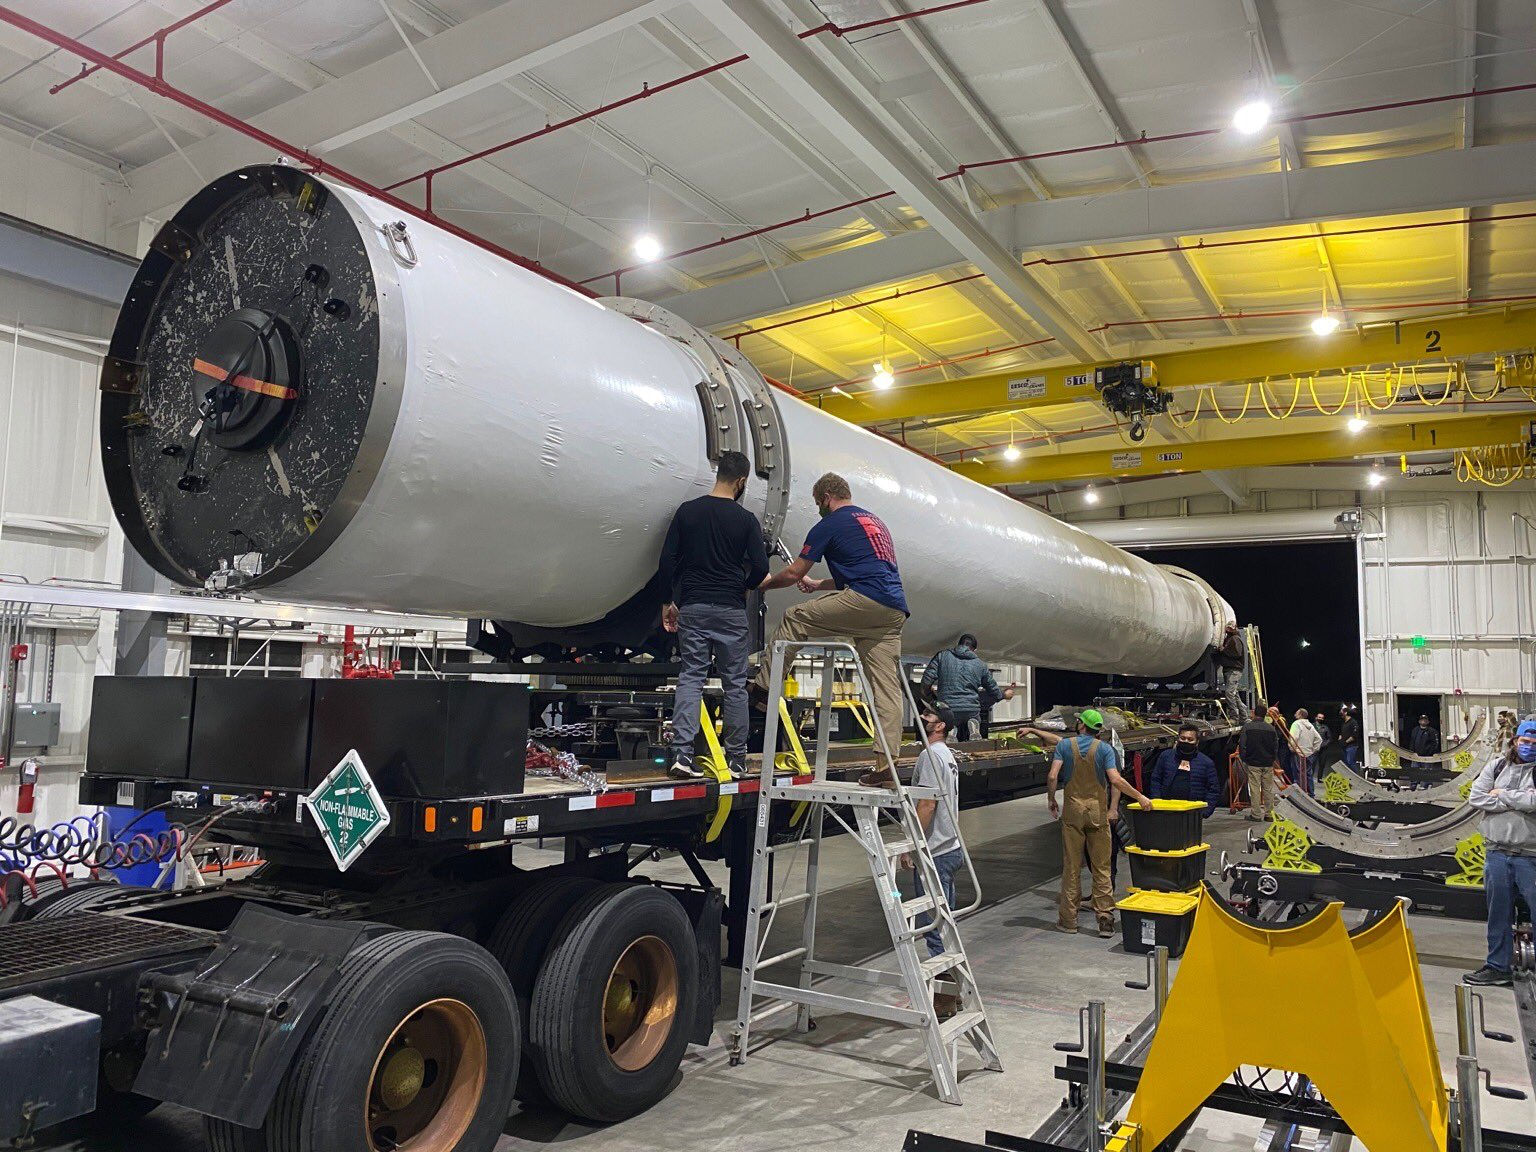 Firefly closes in on debut flight with rocket delivery to Vandenberg launch site